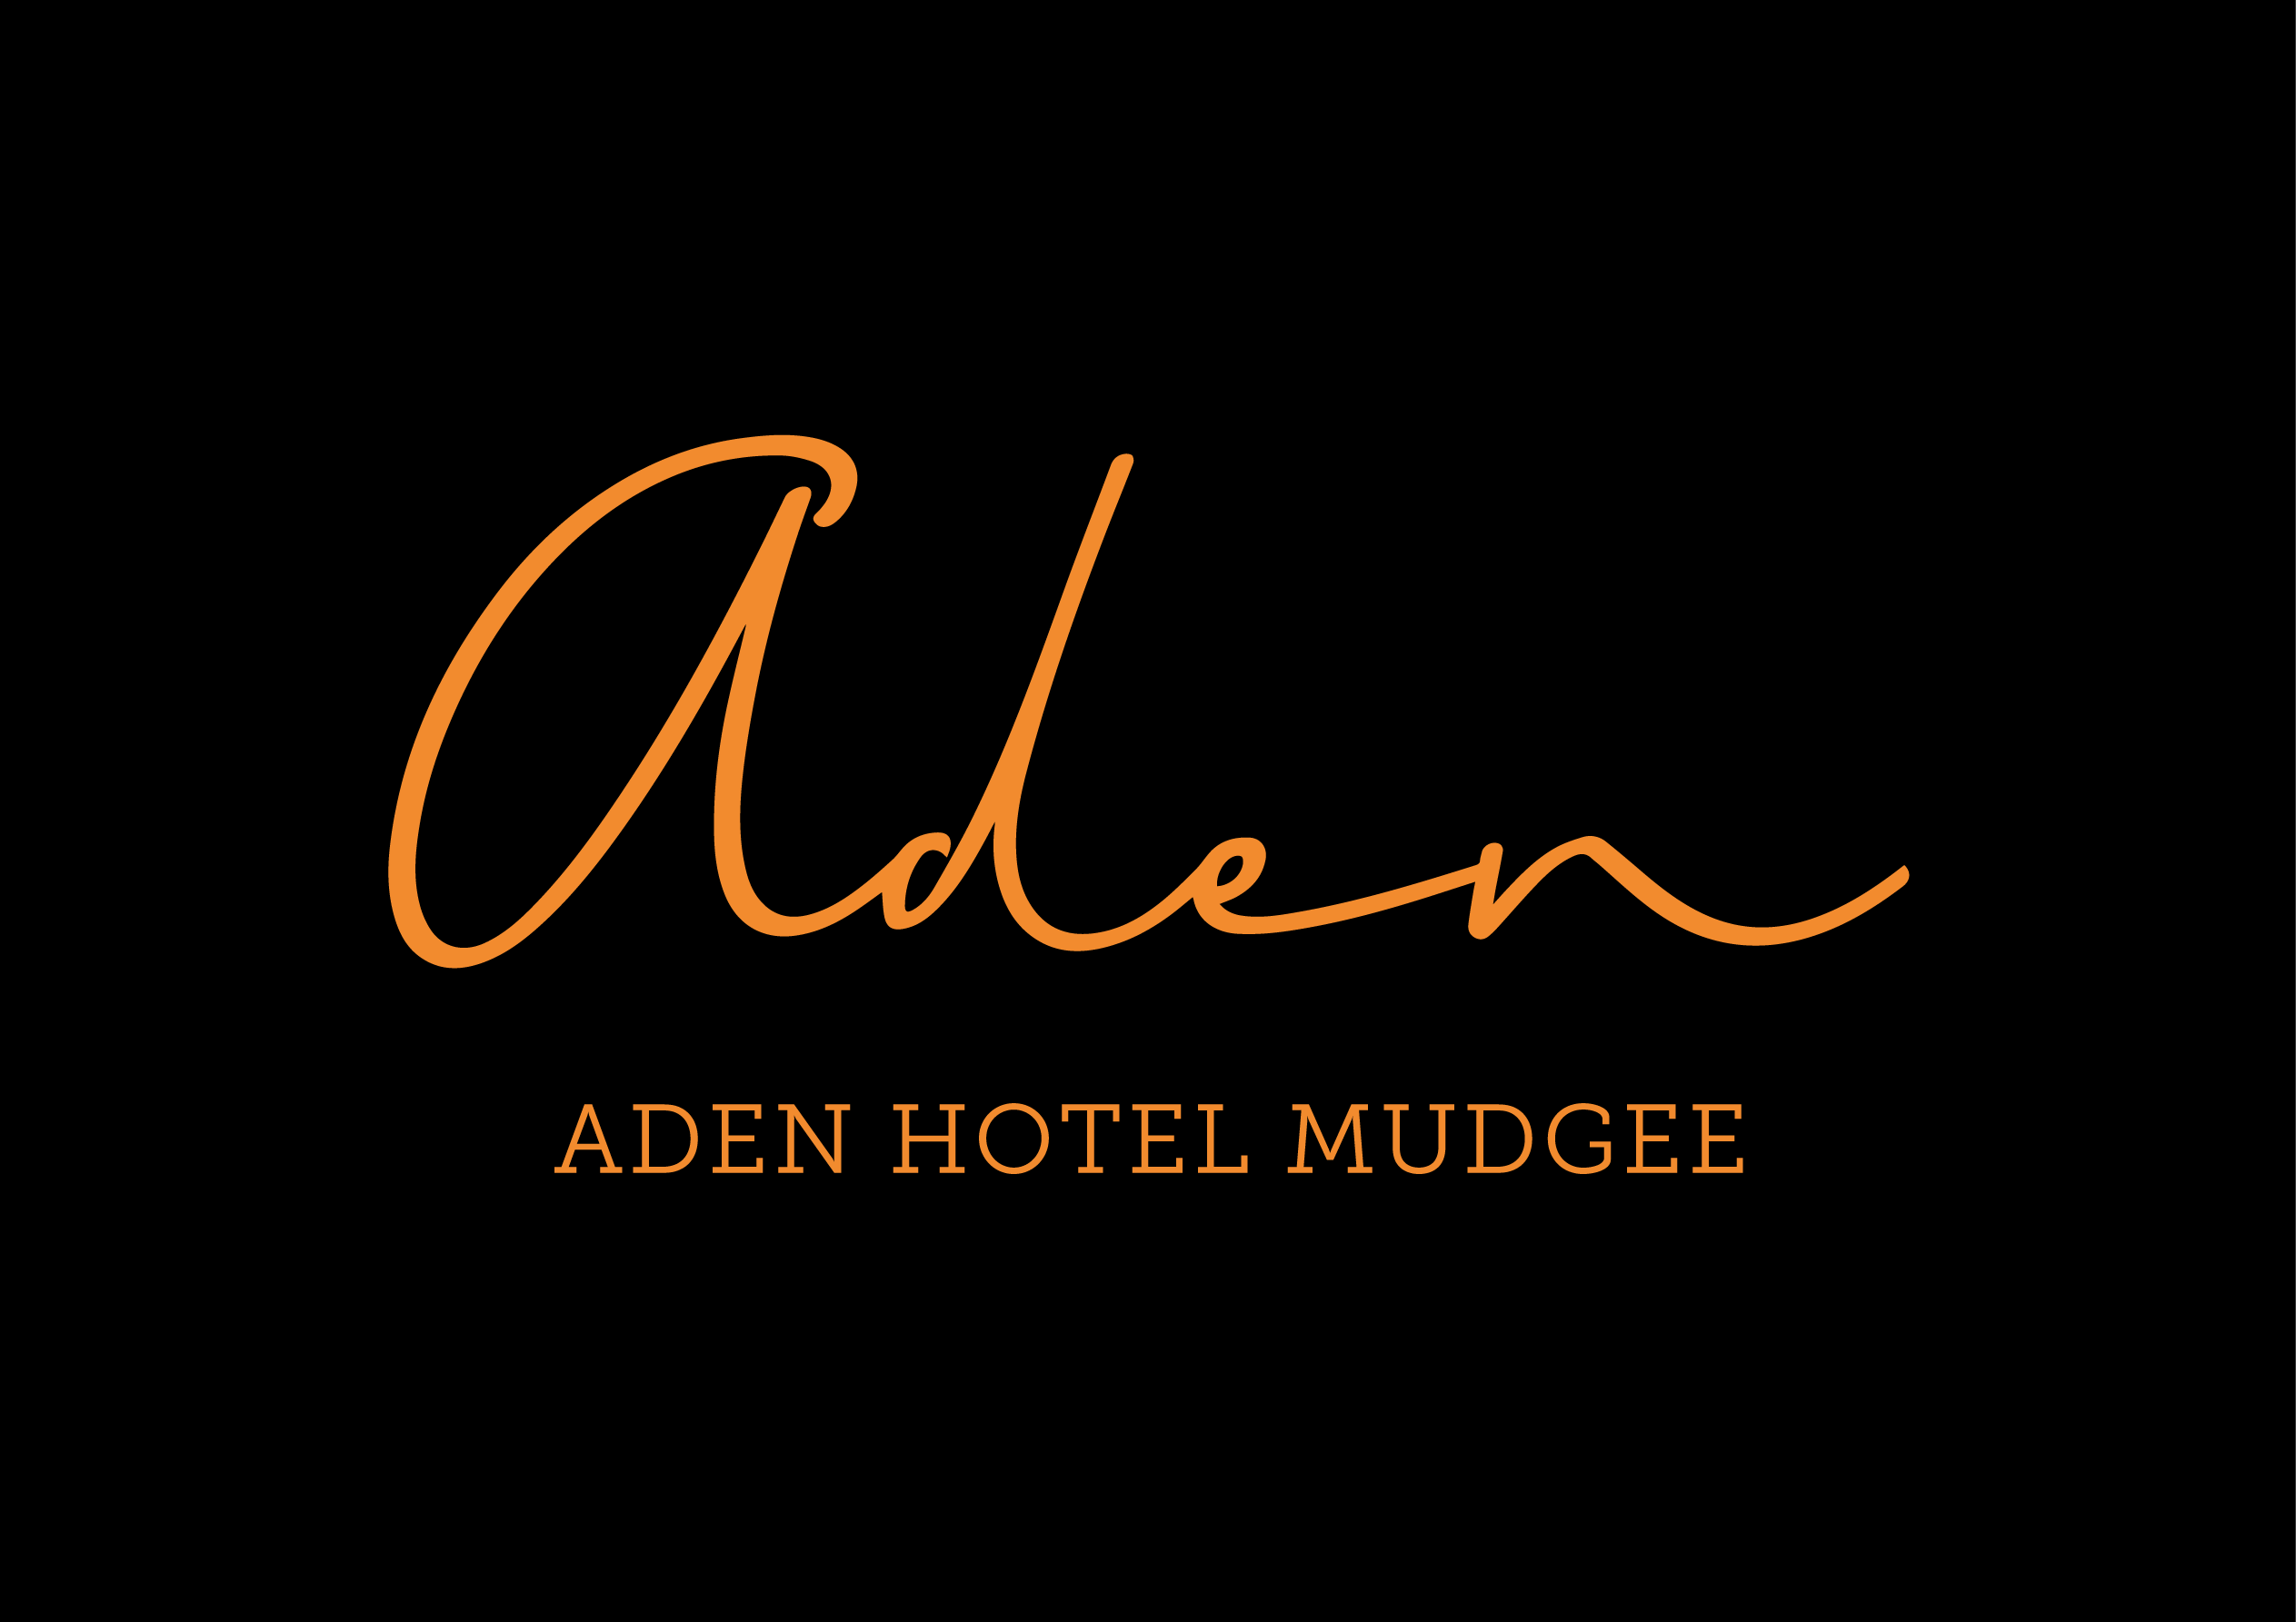 Comfort Inn Aden Hotel Mudgee - Goulburn Accommodation